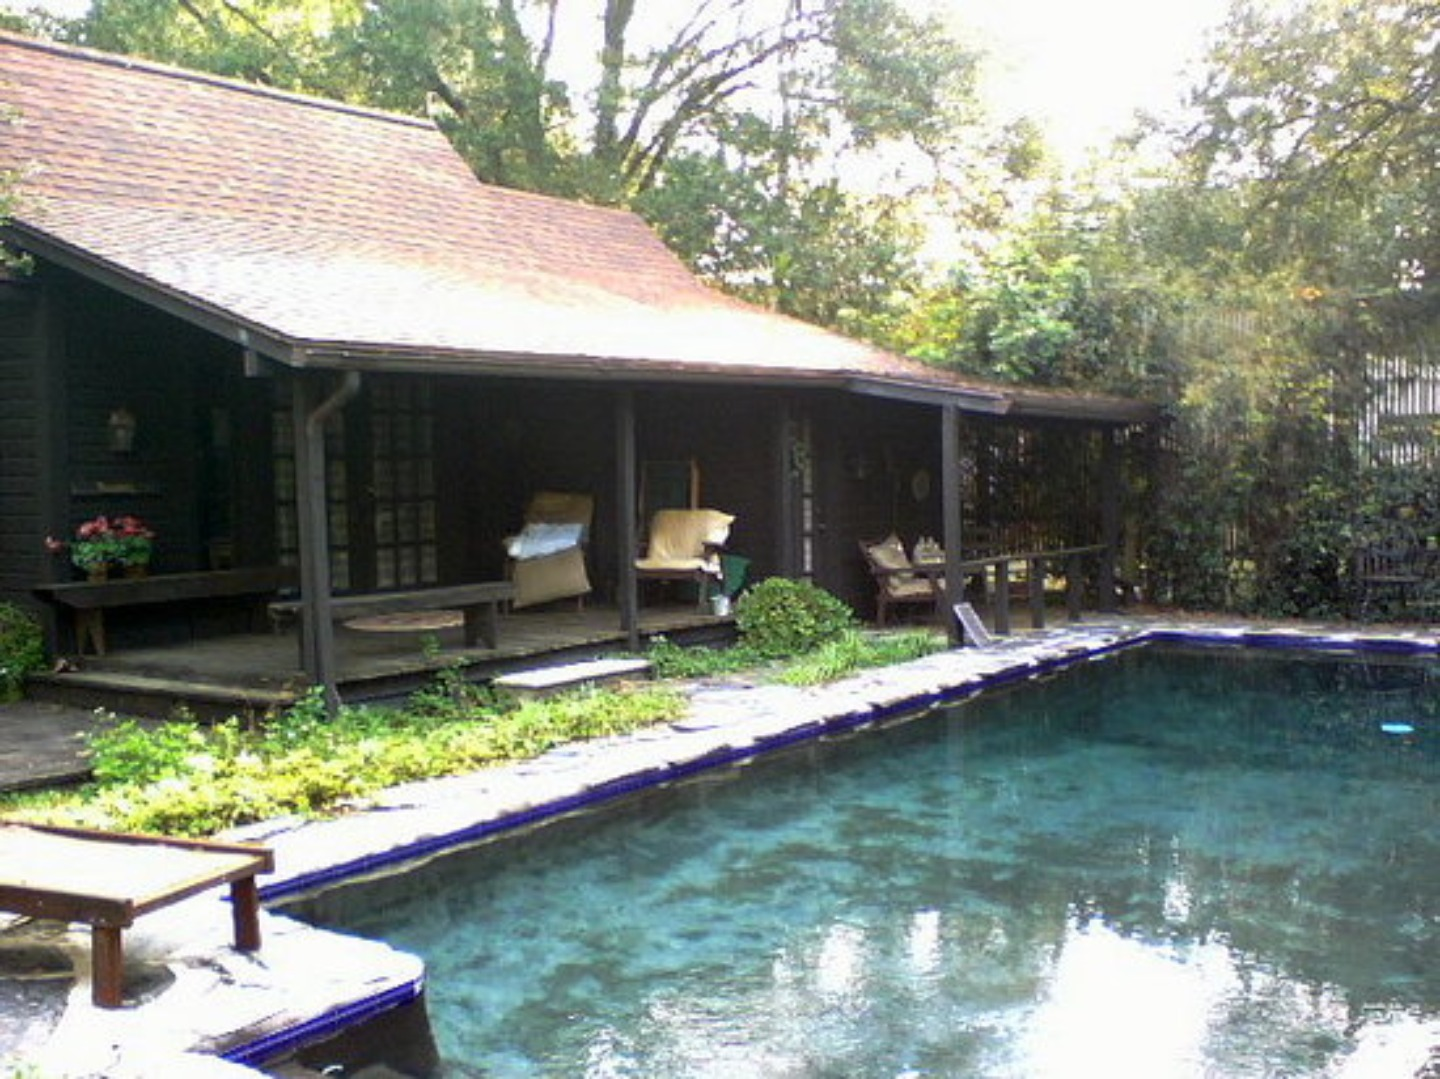 A small house in a pool at Behind the Fence Bed & Breakfast.